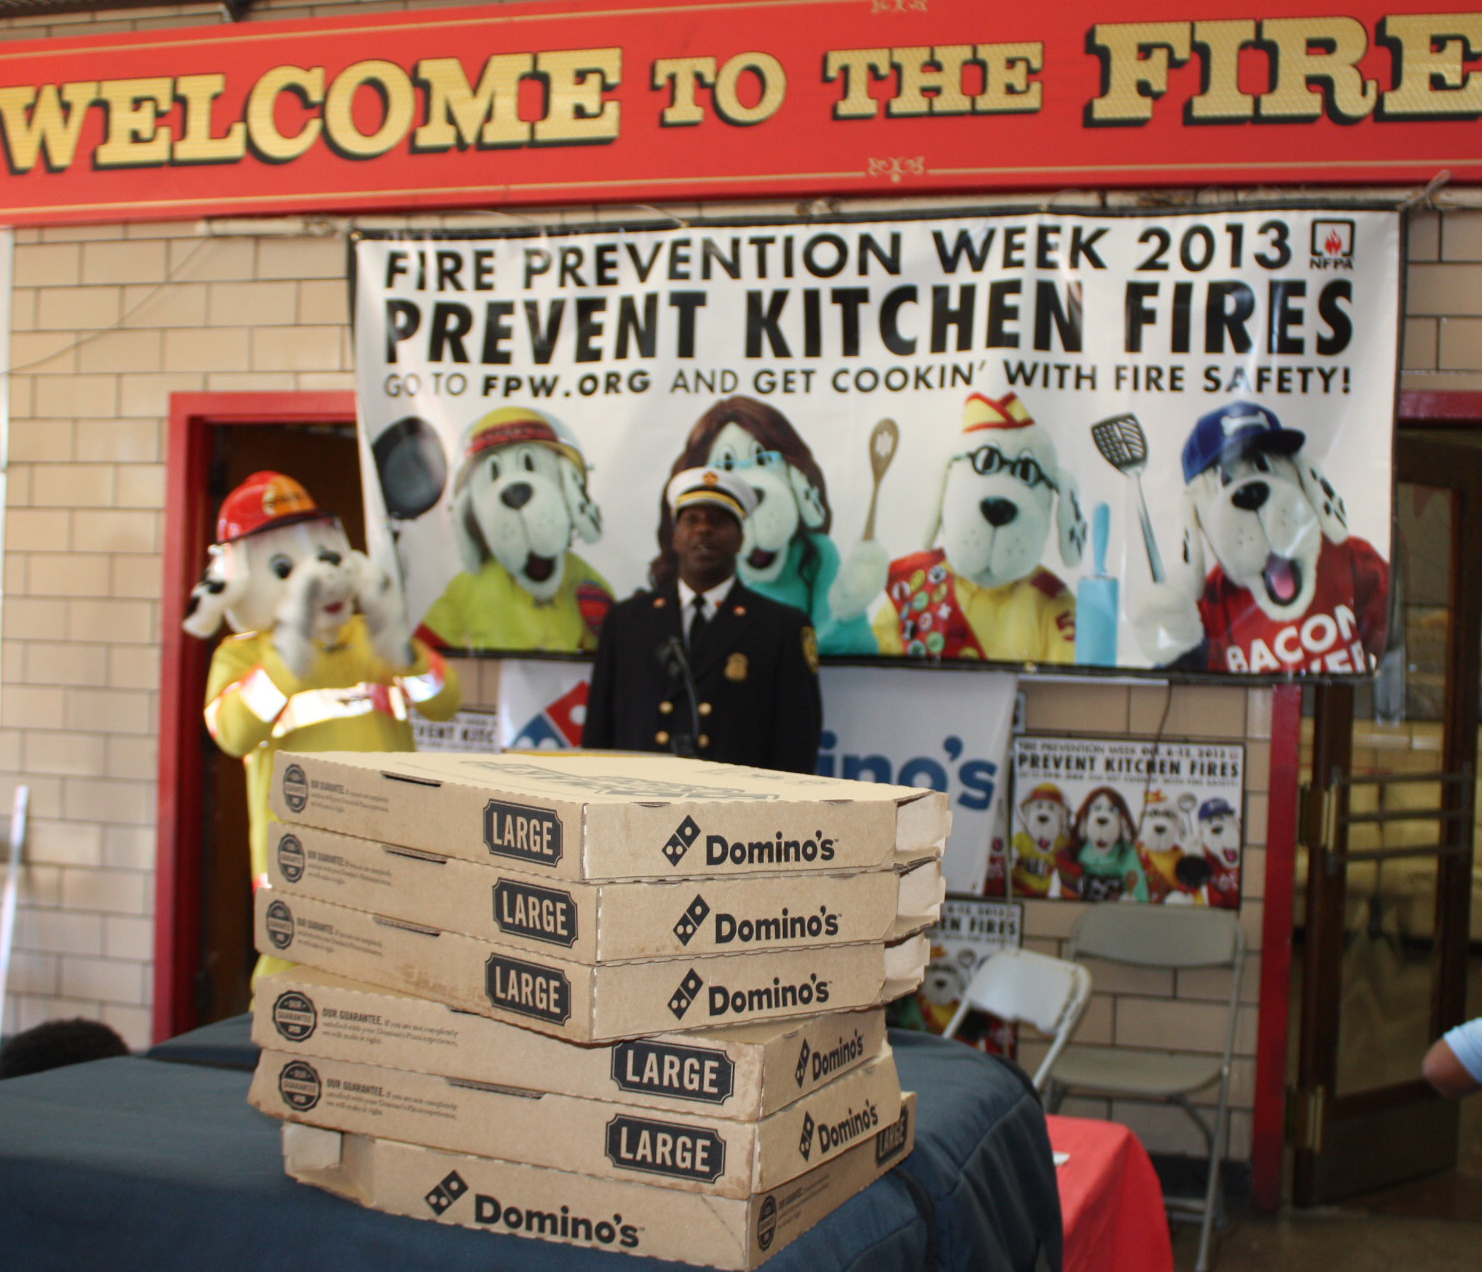 Domino's partnership with NFPA